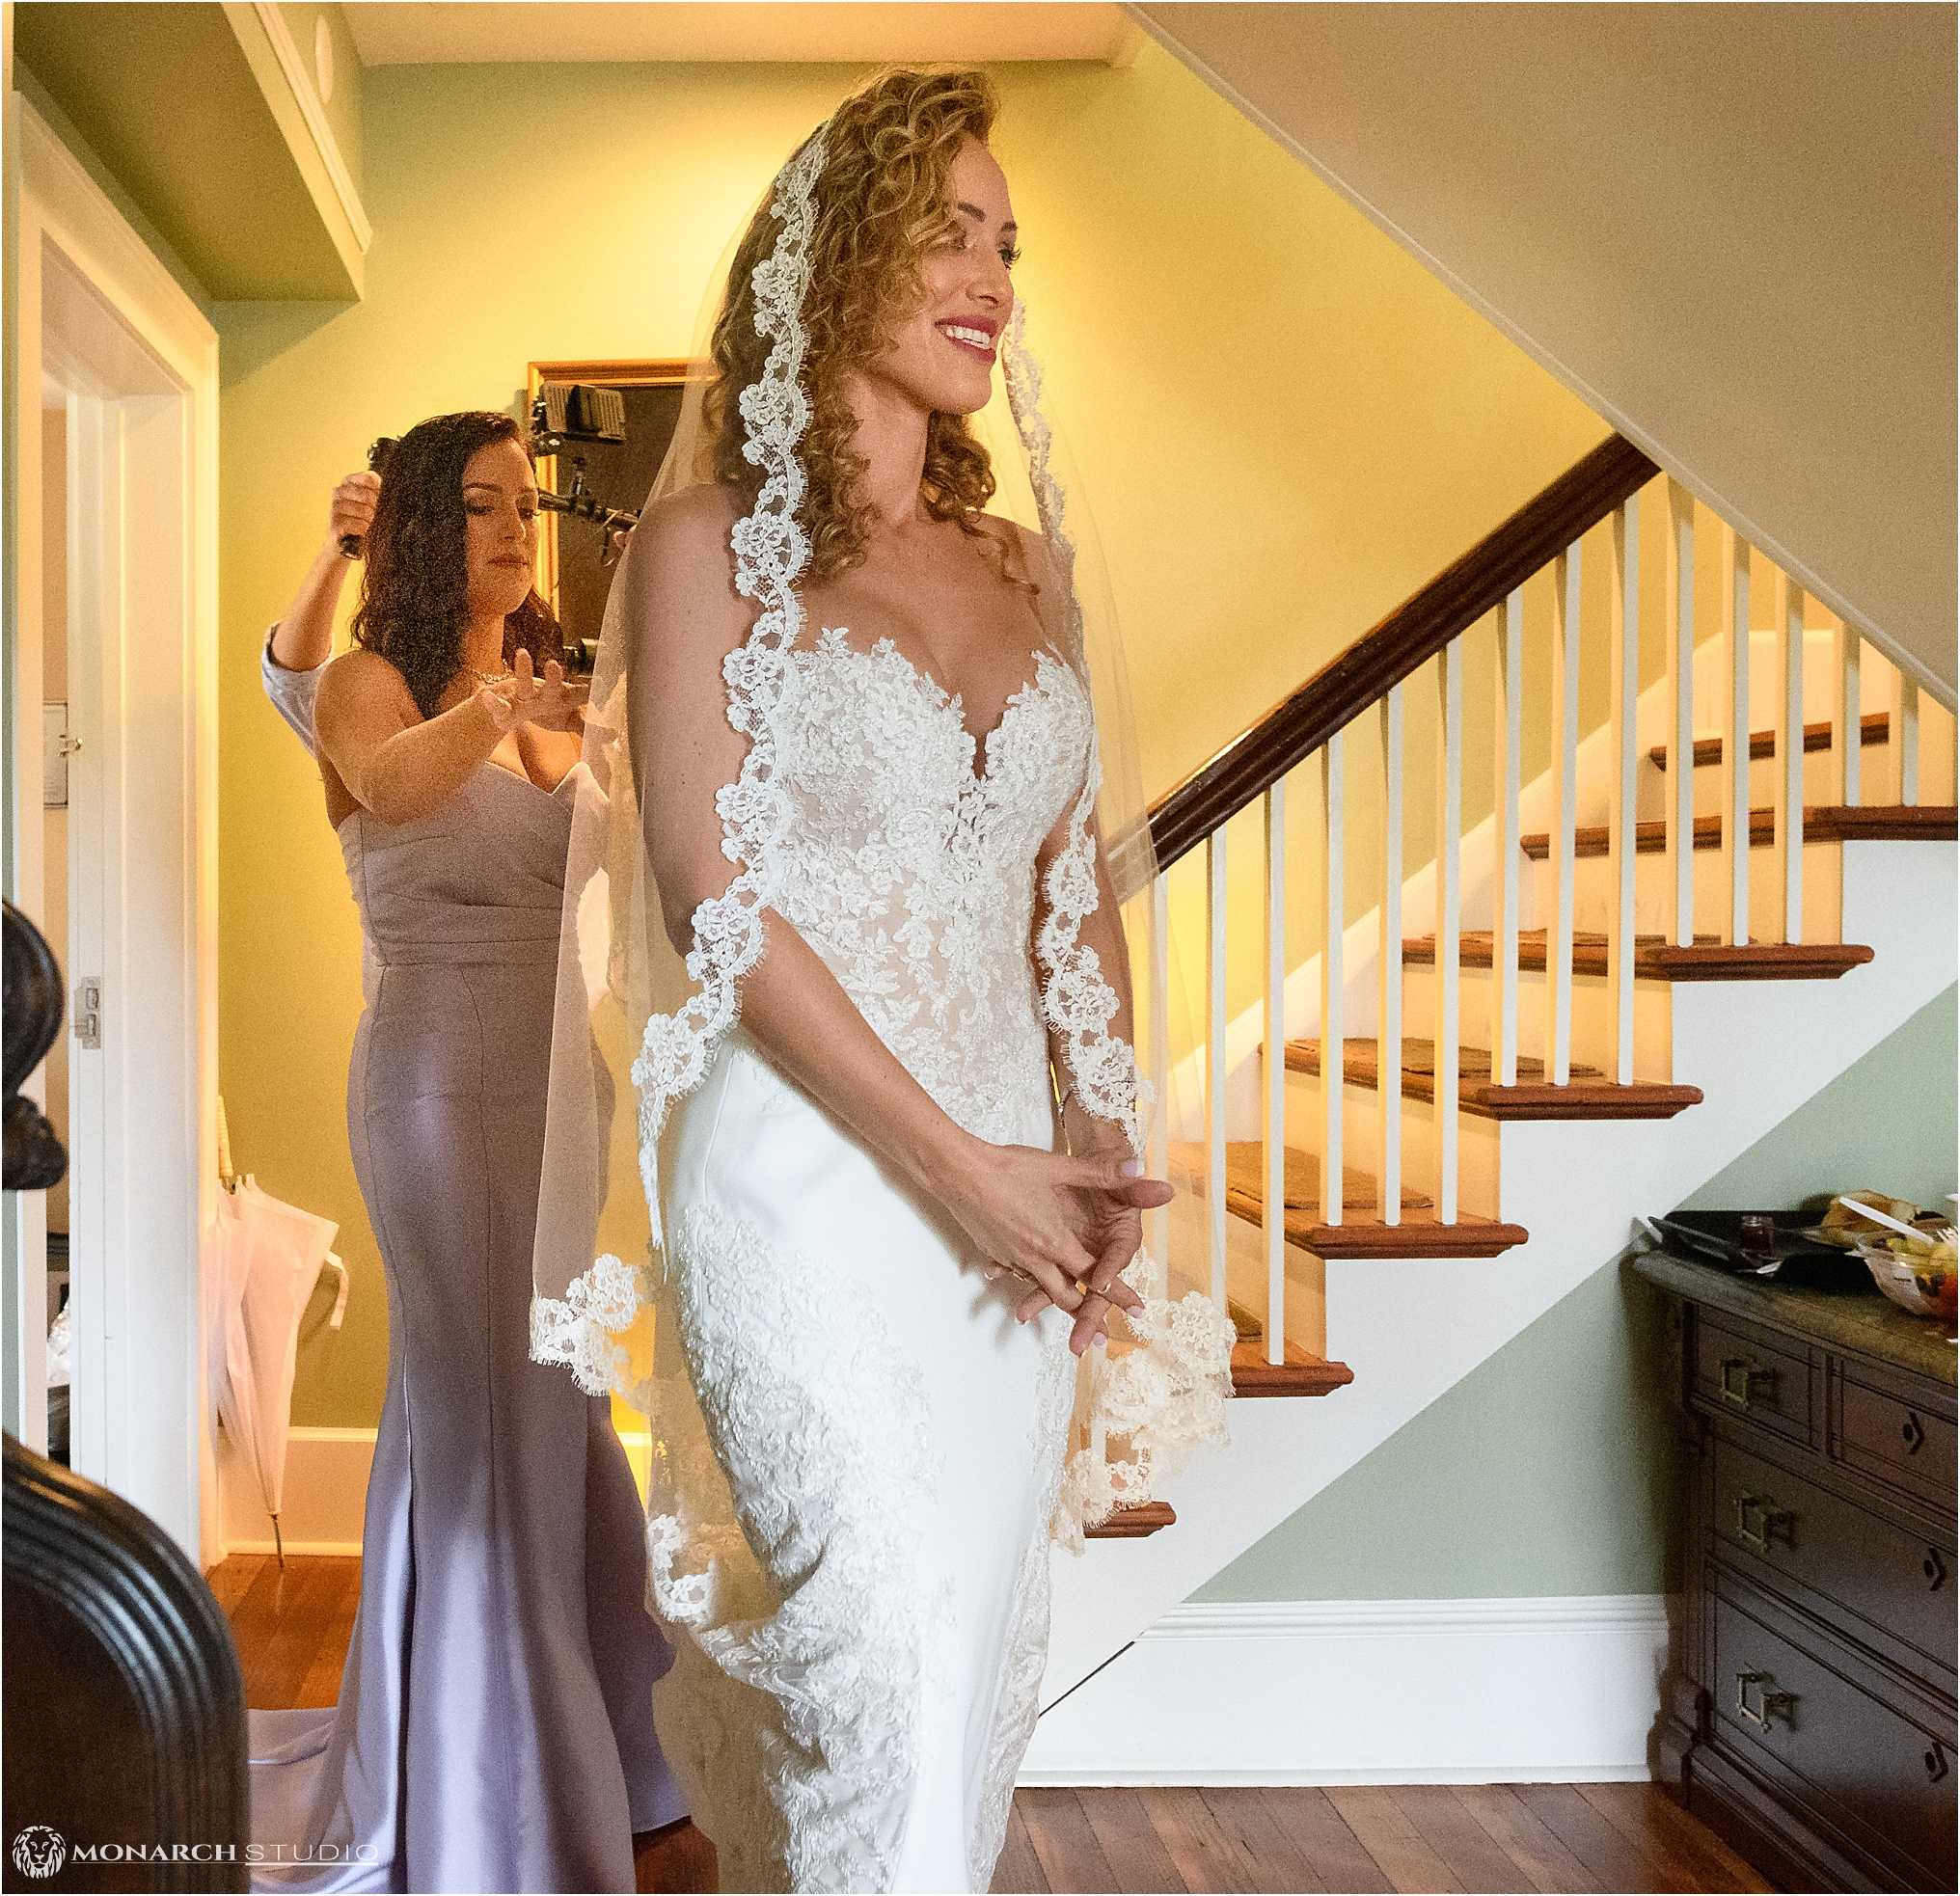 The-Whiteroom-Wedding-Photography-Saint-Augustine-Florida (20).jpg